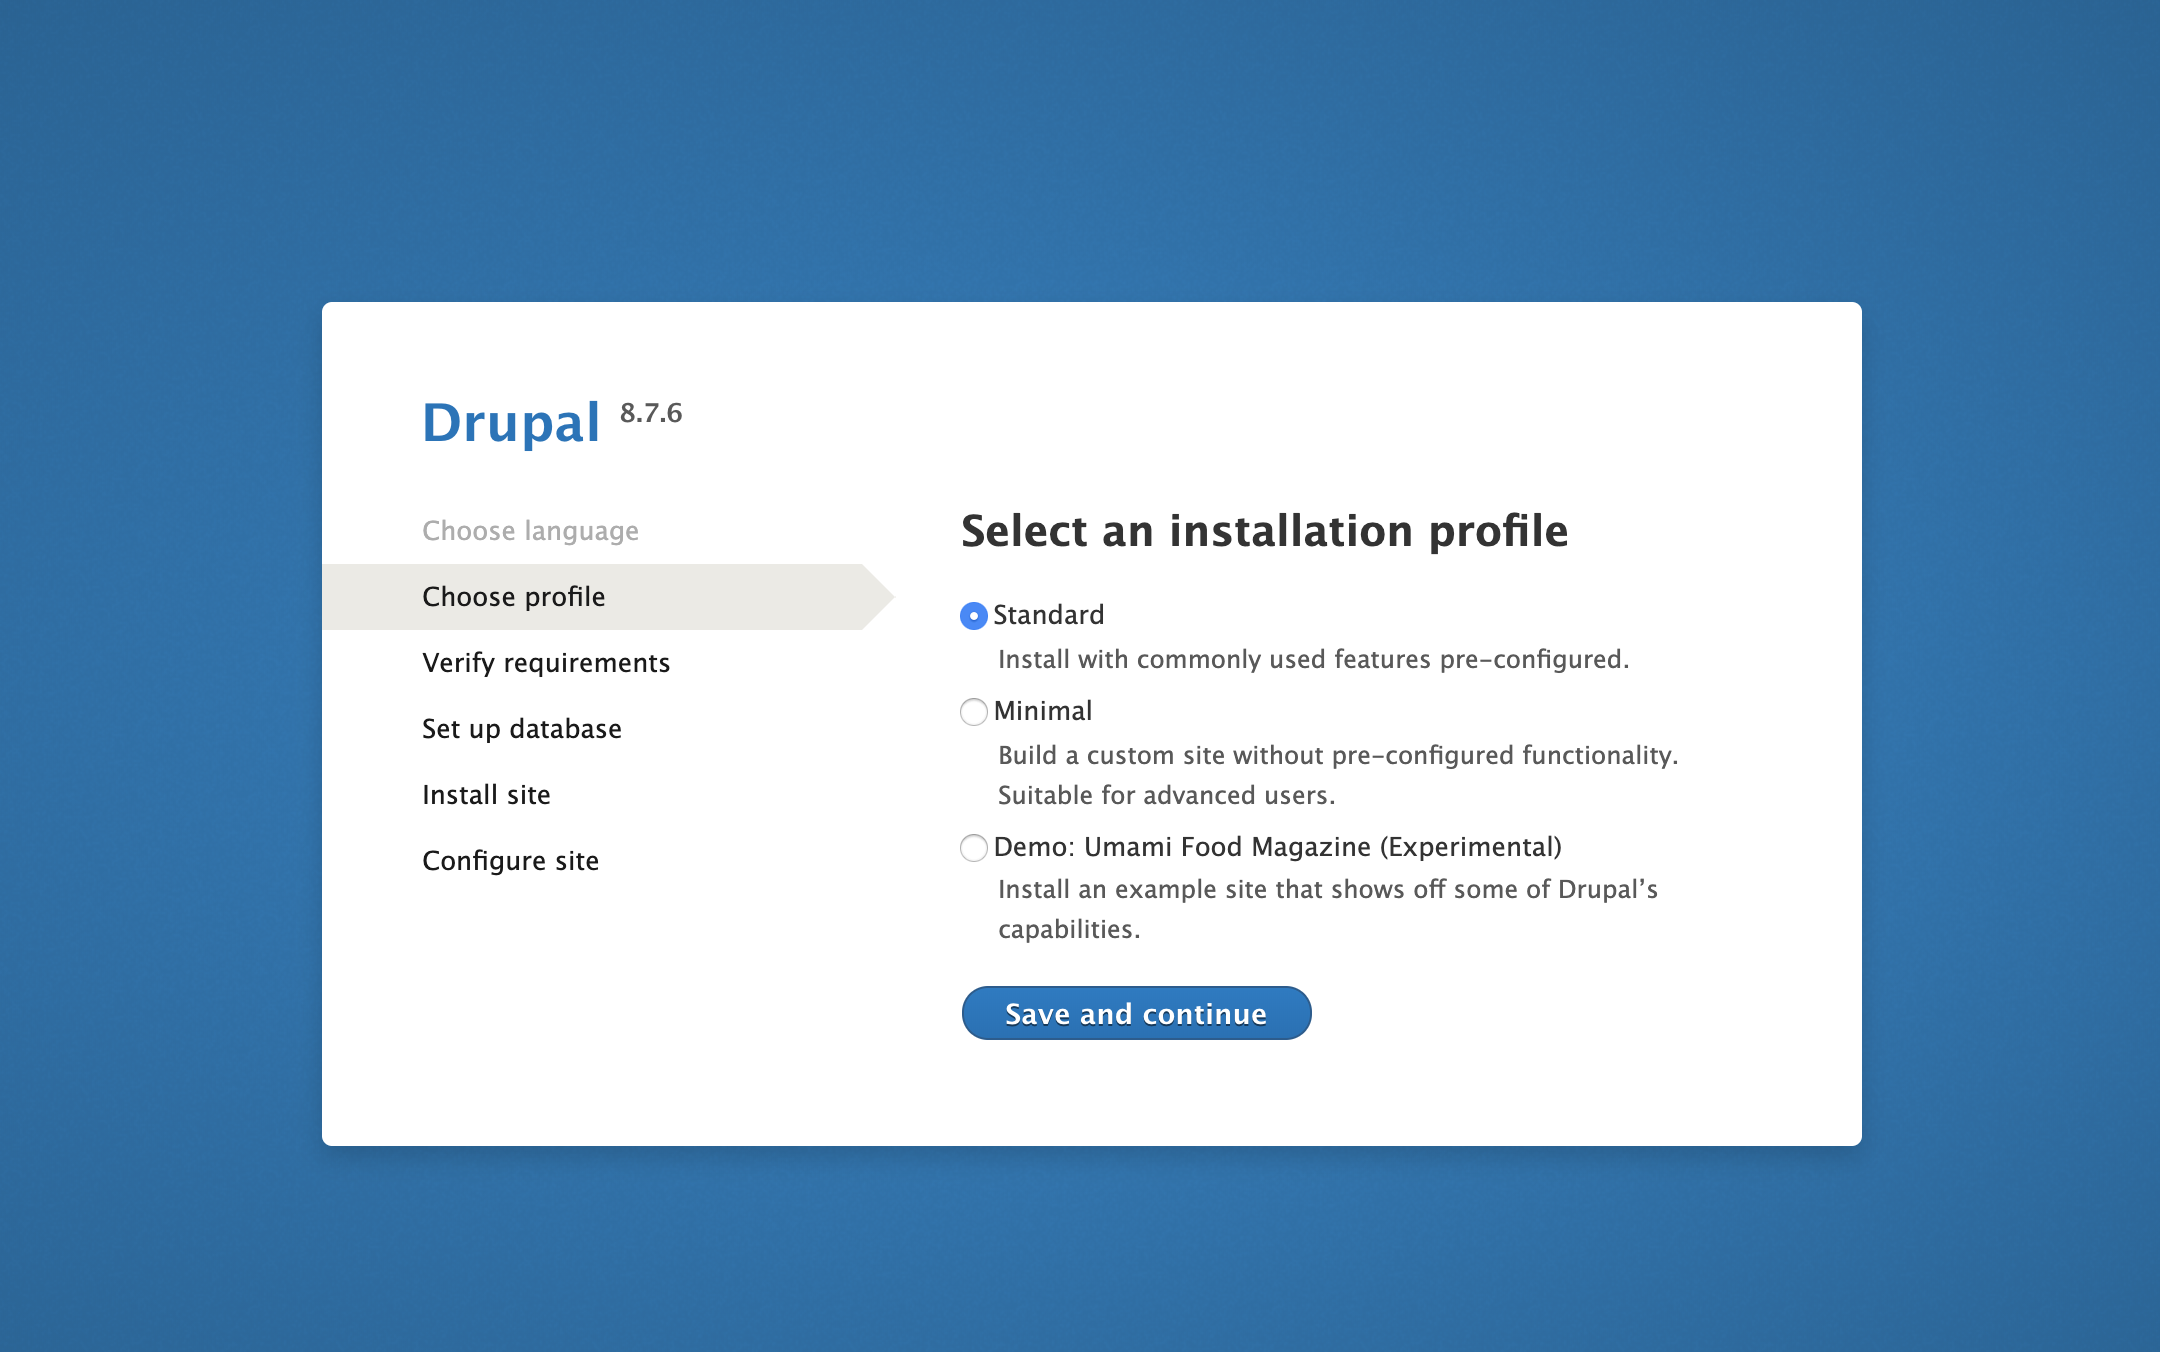 Choose profile page on Drupal web interface